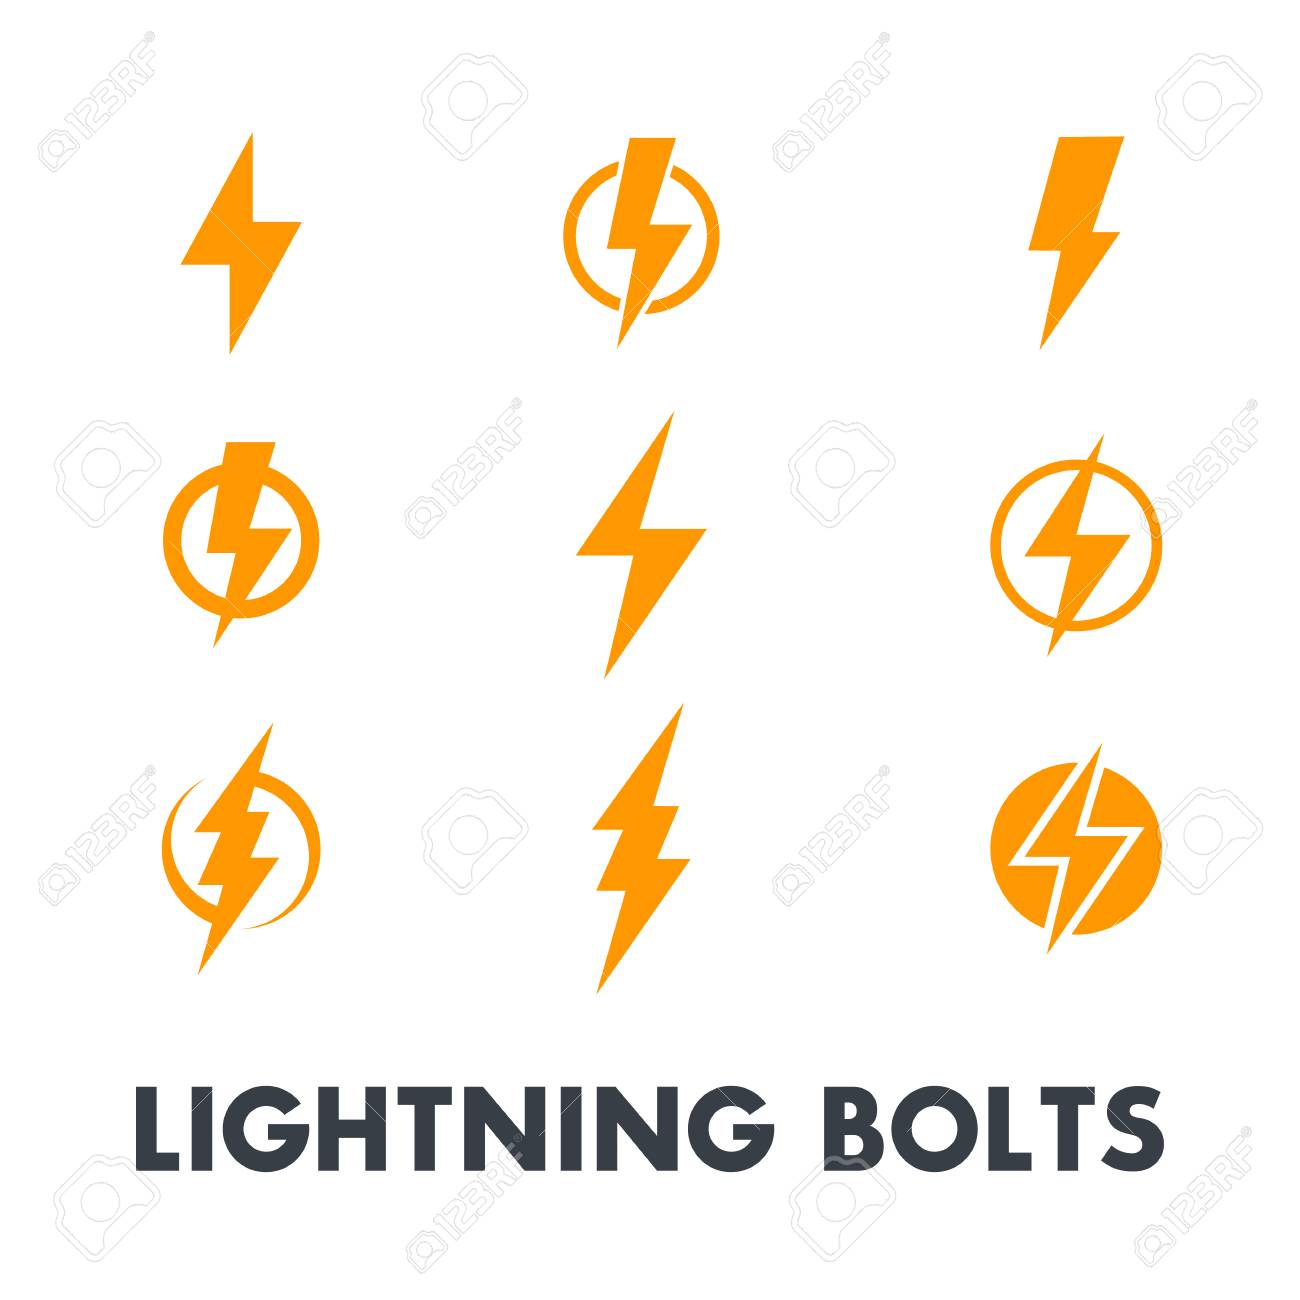 Lightning Bolt Vector Signs, Icons Isolated Over White Royalty ...